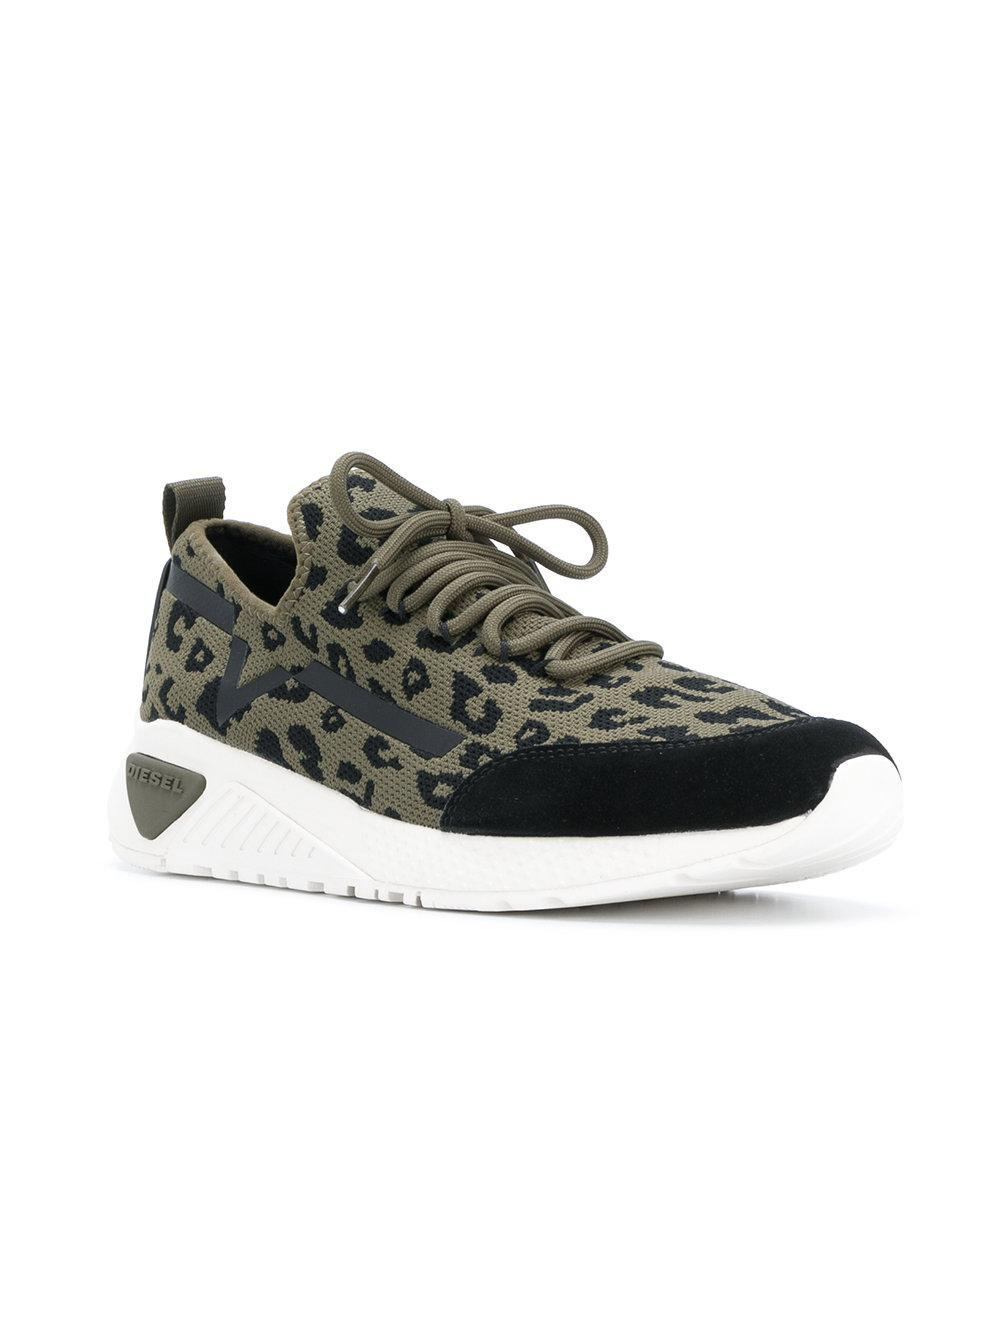 Pick A Best For Sale For Sale Wholesale Price leopard print low-top sneakers - Green Diesel 1pYZWuC